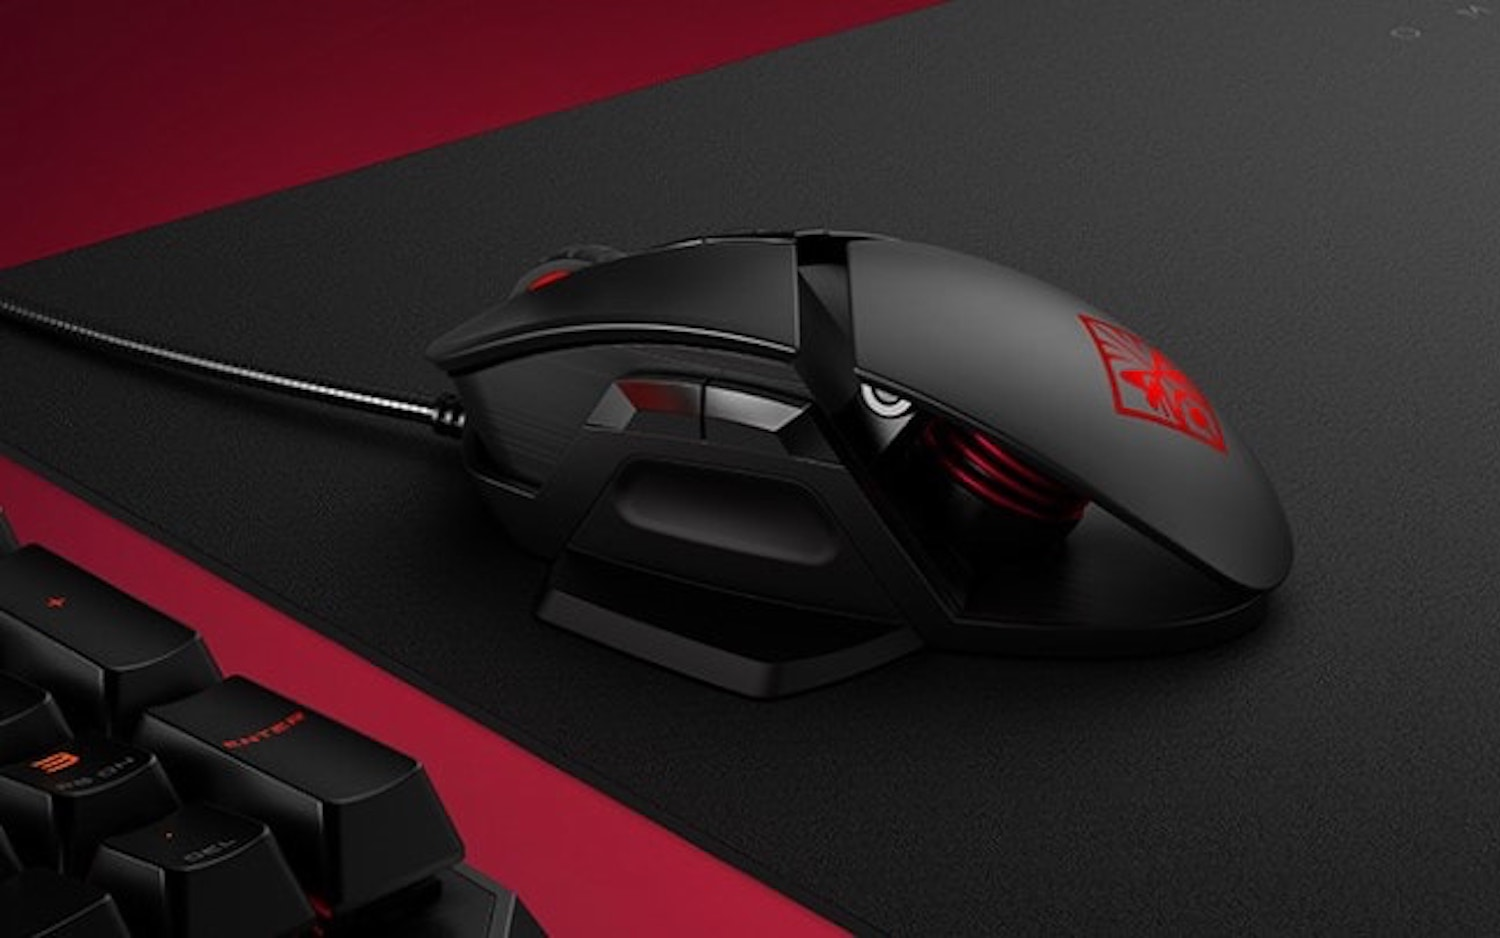 HP Omen Reactor Review: Is This Spring-Loaded Gaming Mouse